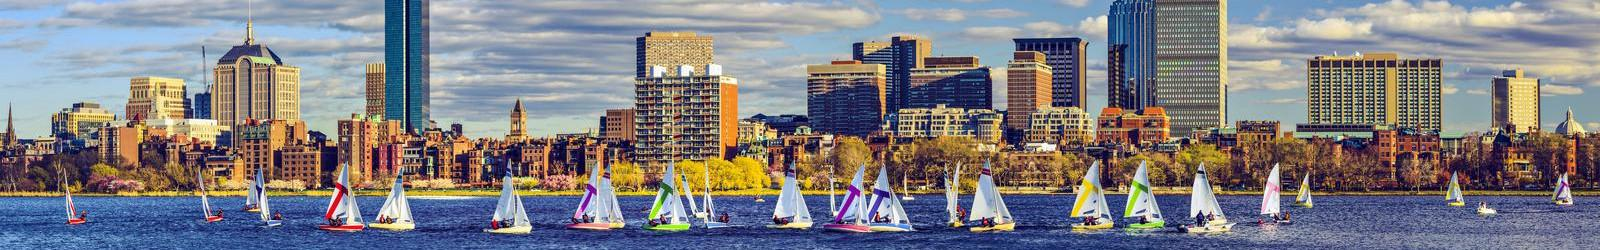 Therapists in Boston, Massachusetts: psychologists, counselors, and mental health specialists